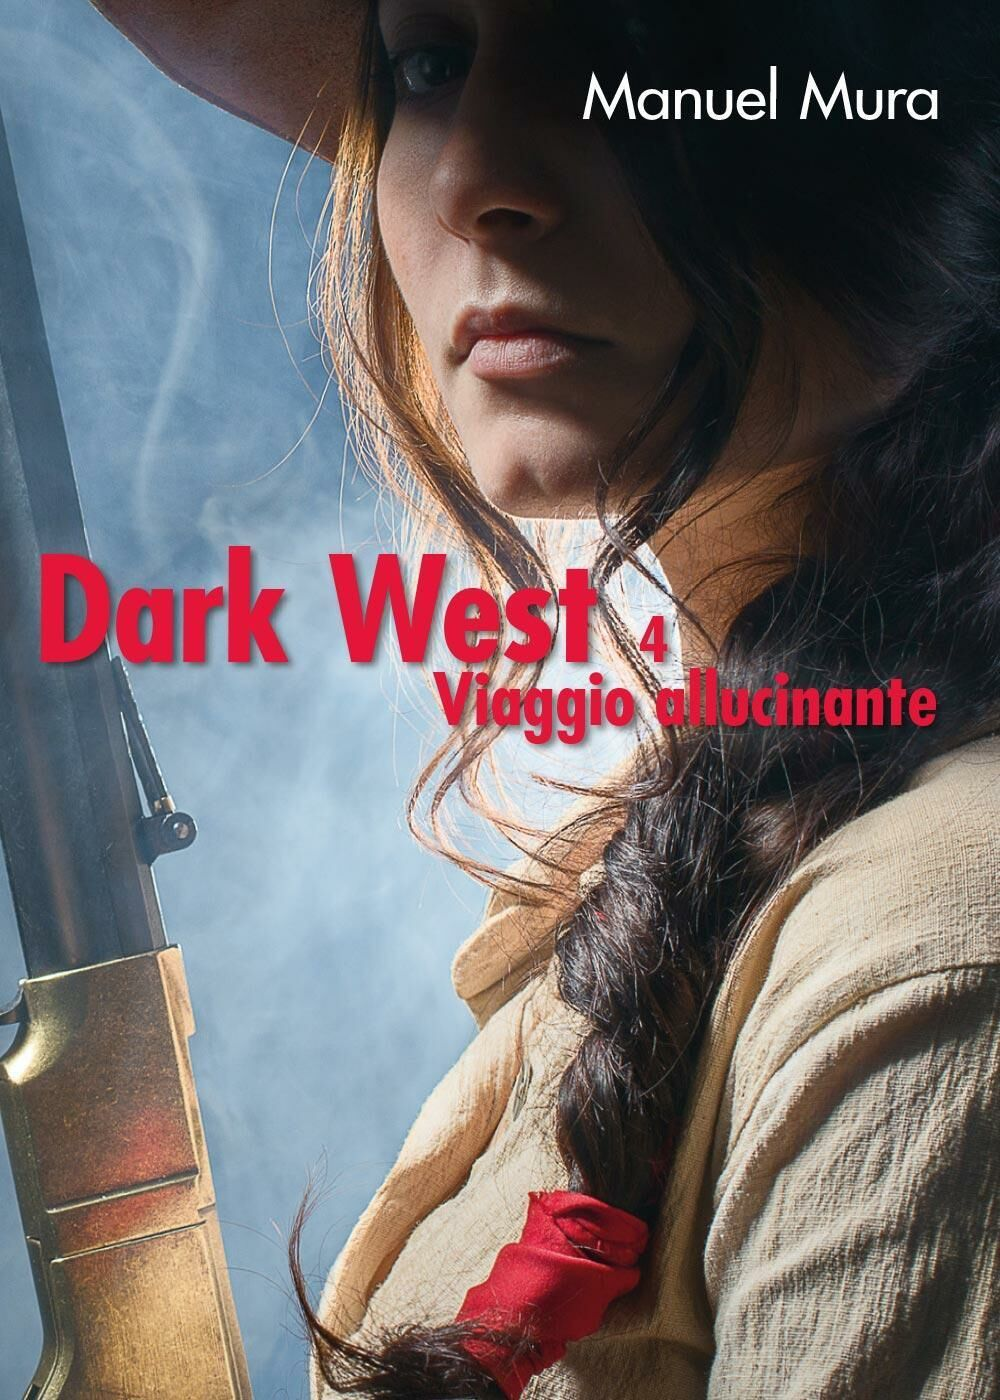 Viaggio allucinante. Dark west. Vol. 4